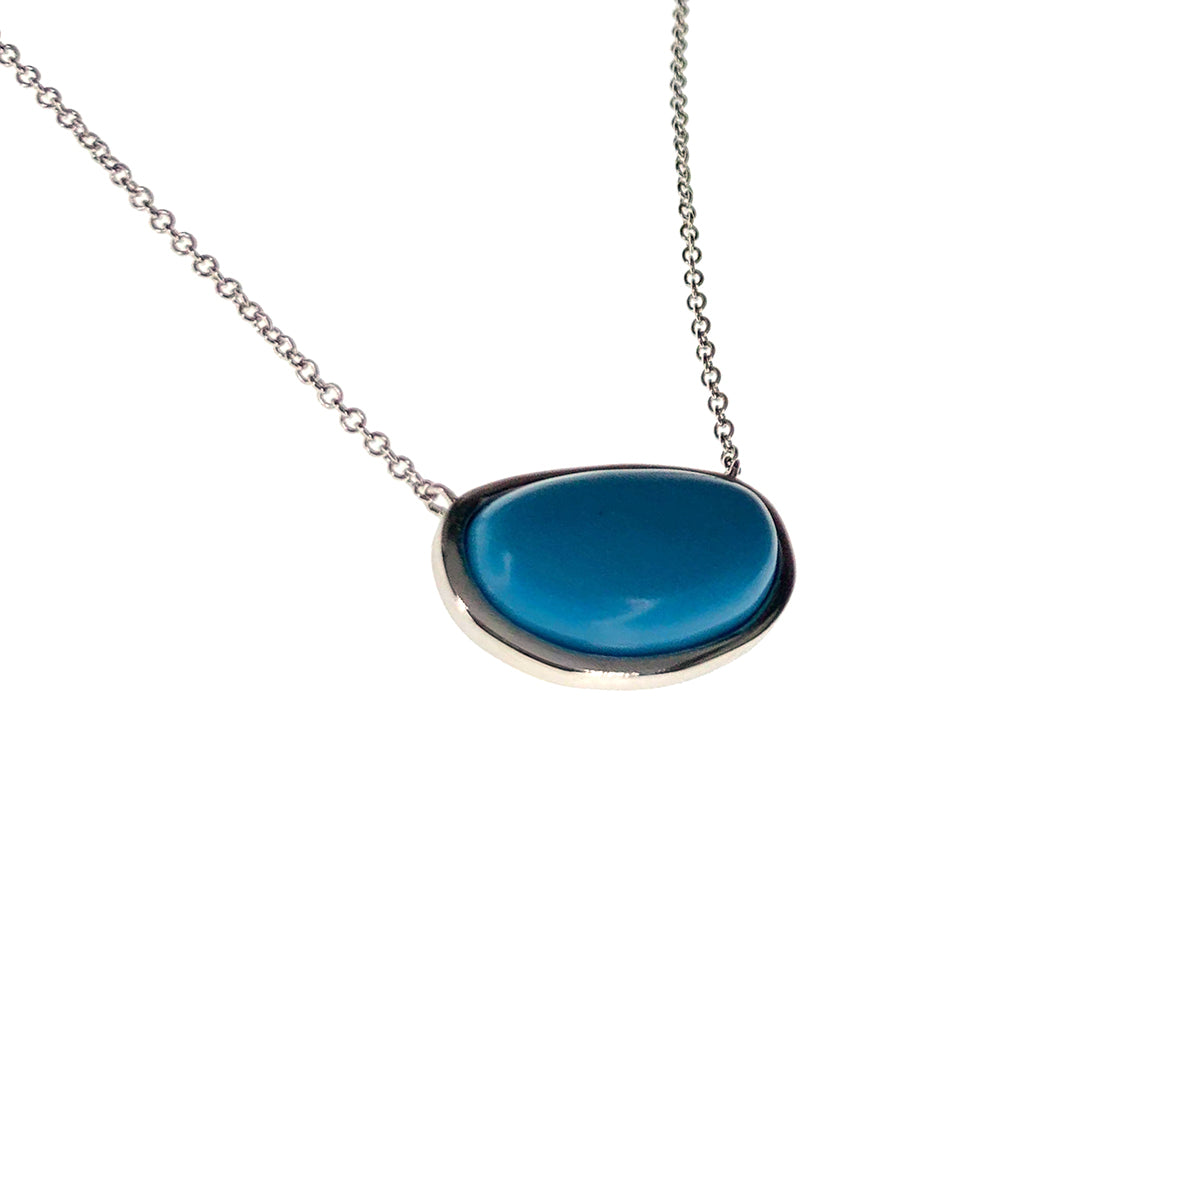 Turquoise - Believe Necklace